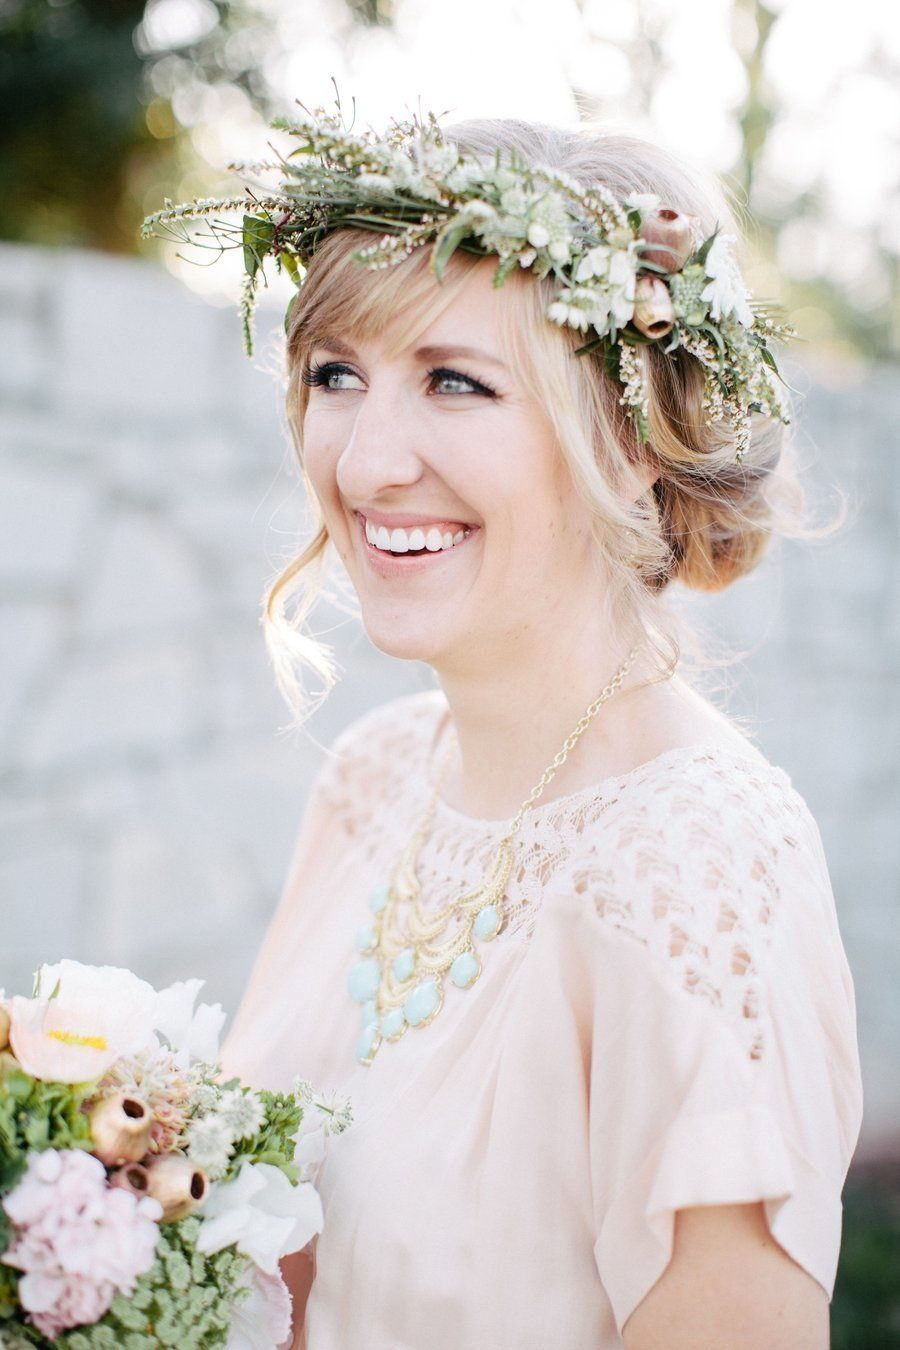 Spring Inspired Photo Shoot from Jen Dillender Photography + ...